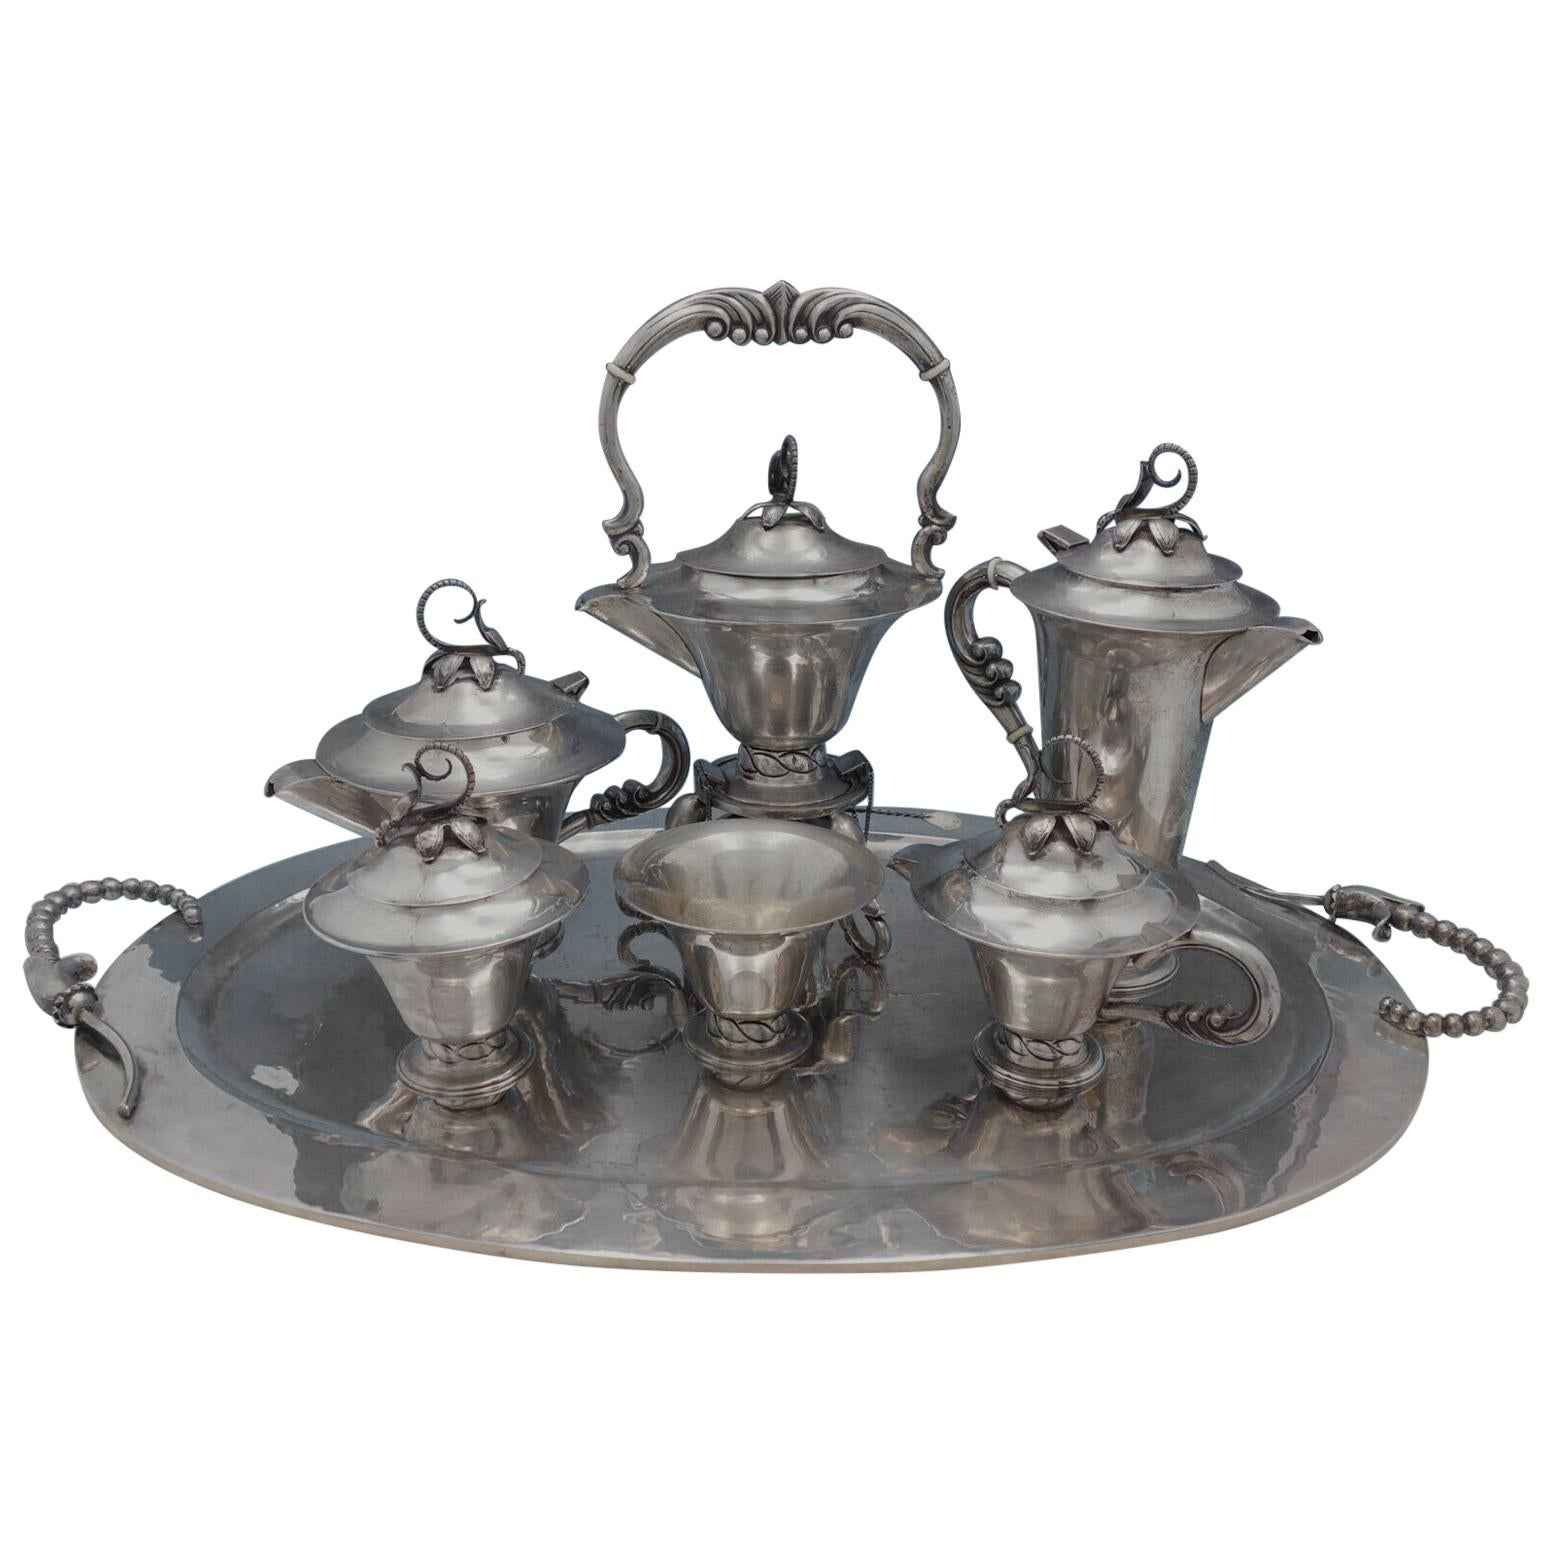 Blossom Mexican Mexico Sterling Silver Tea Set 7-Piece